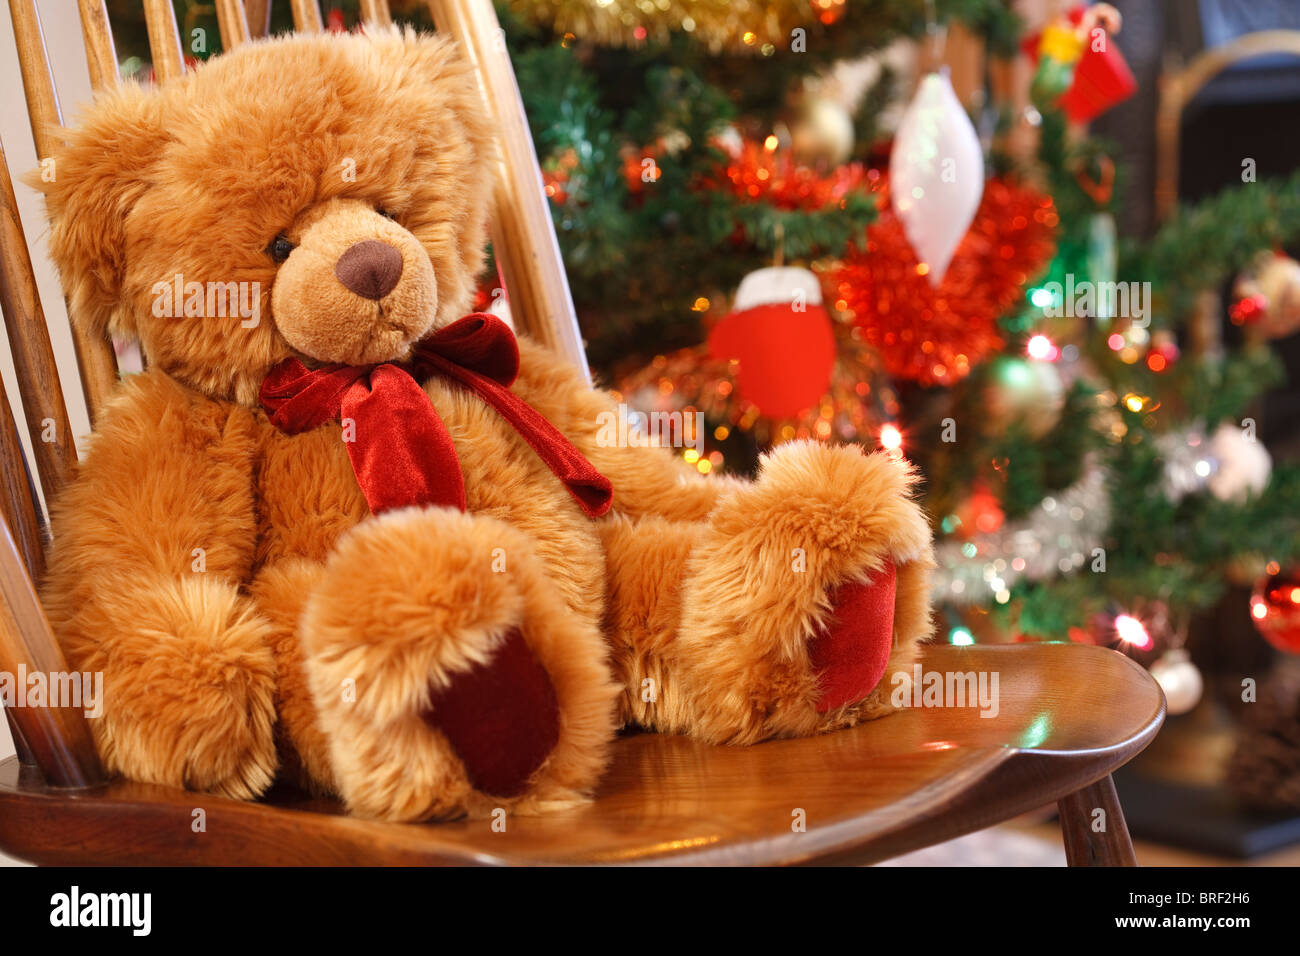 Noel Traditionnel Scène De Noël Traditionnel Avec Un Ours En Peluche Sur Une Chaise